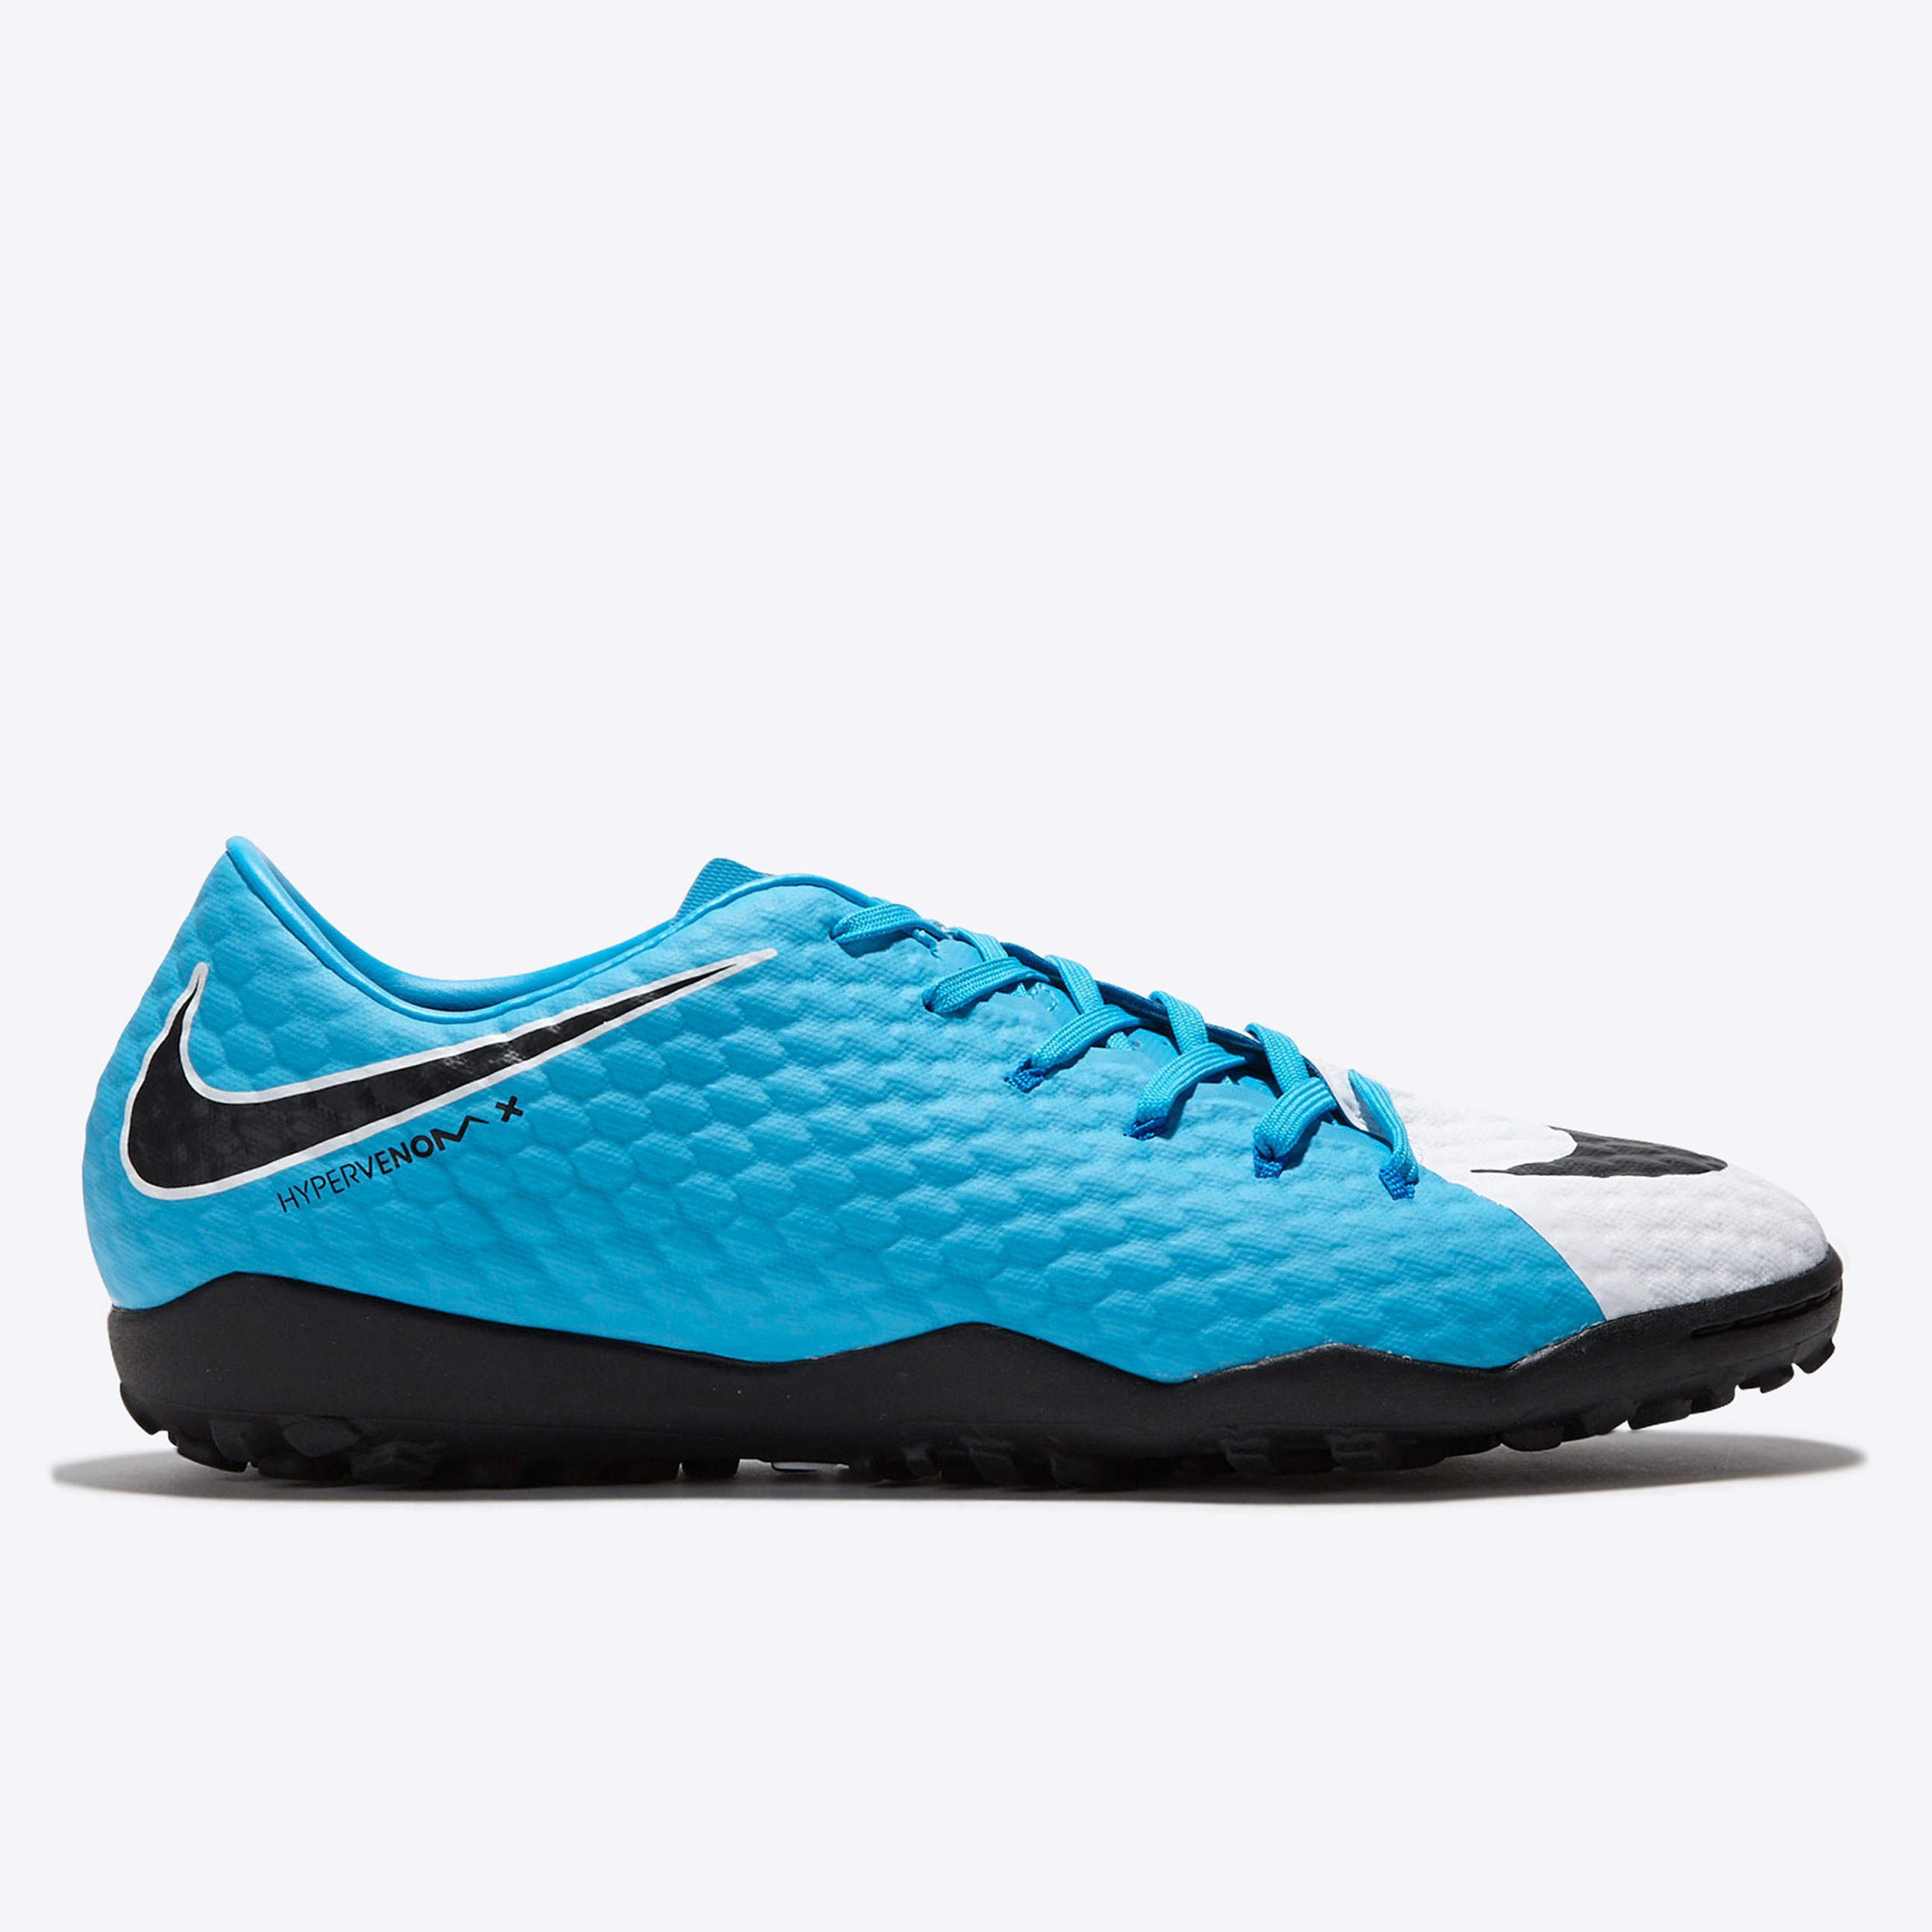 Nike Hypervenom Phelon III Astroturf Trainers - White/Black/Photo Blue